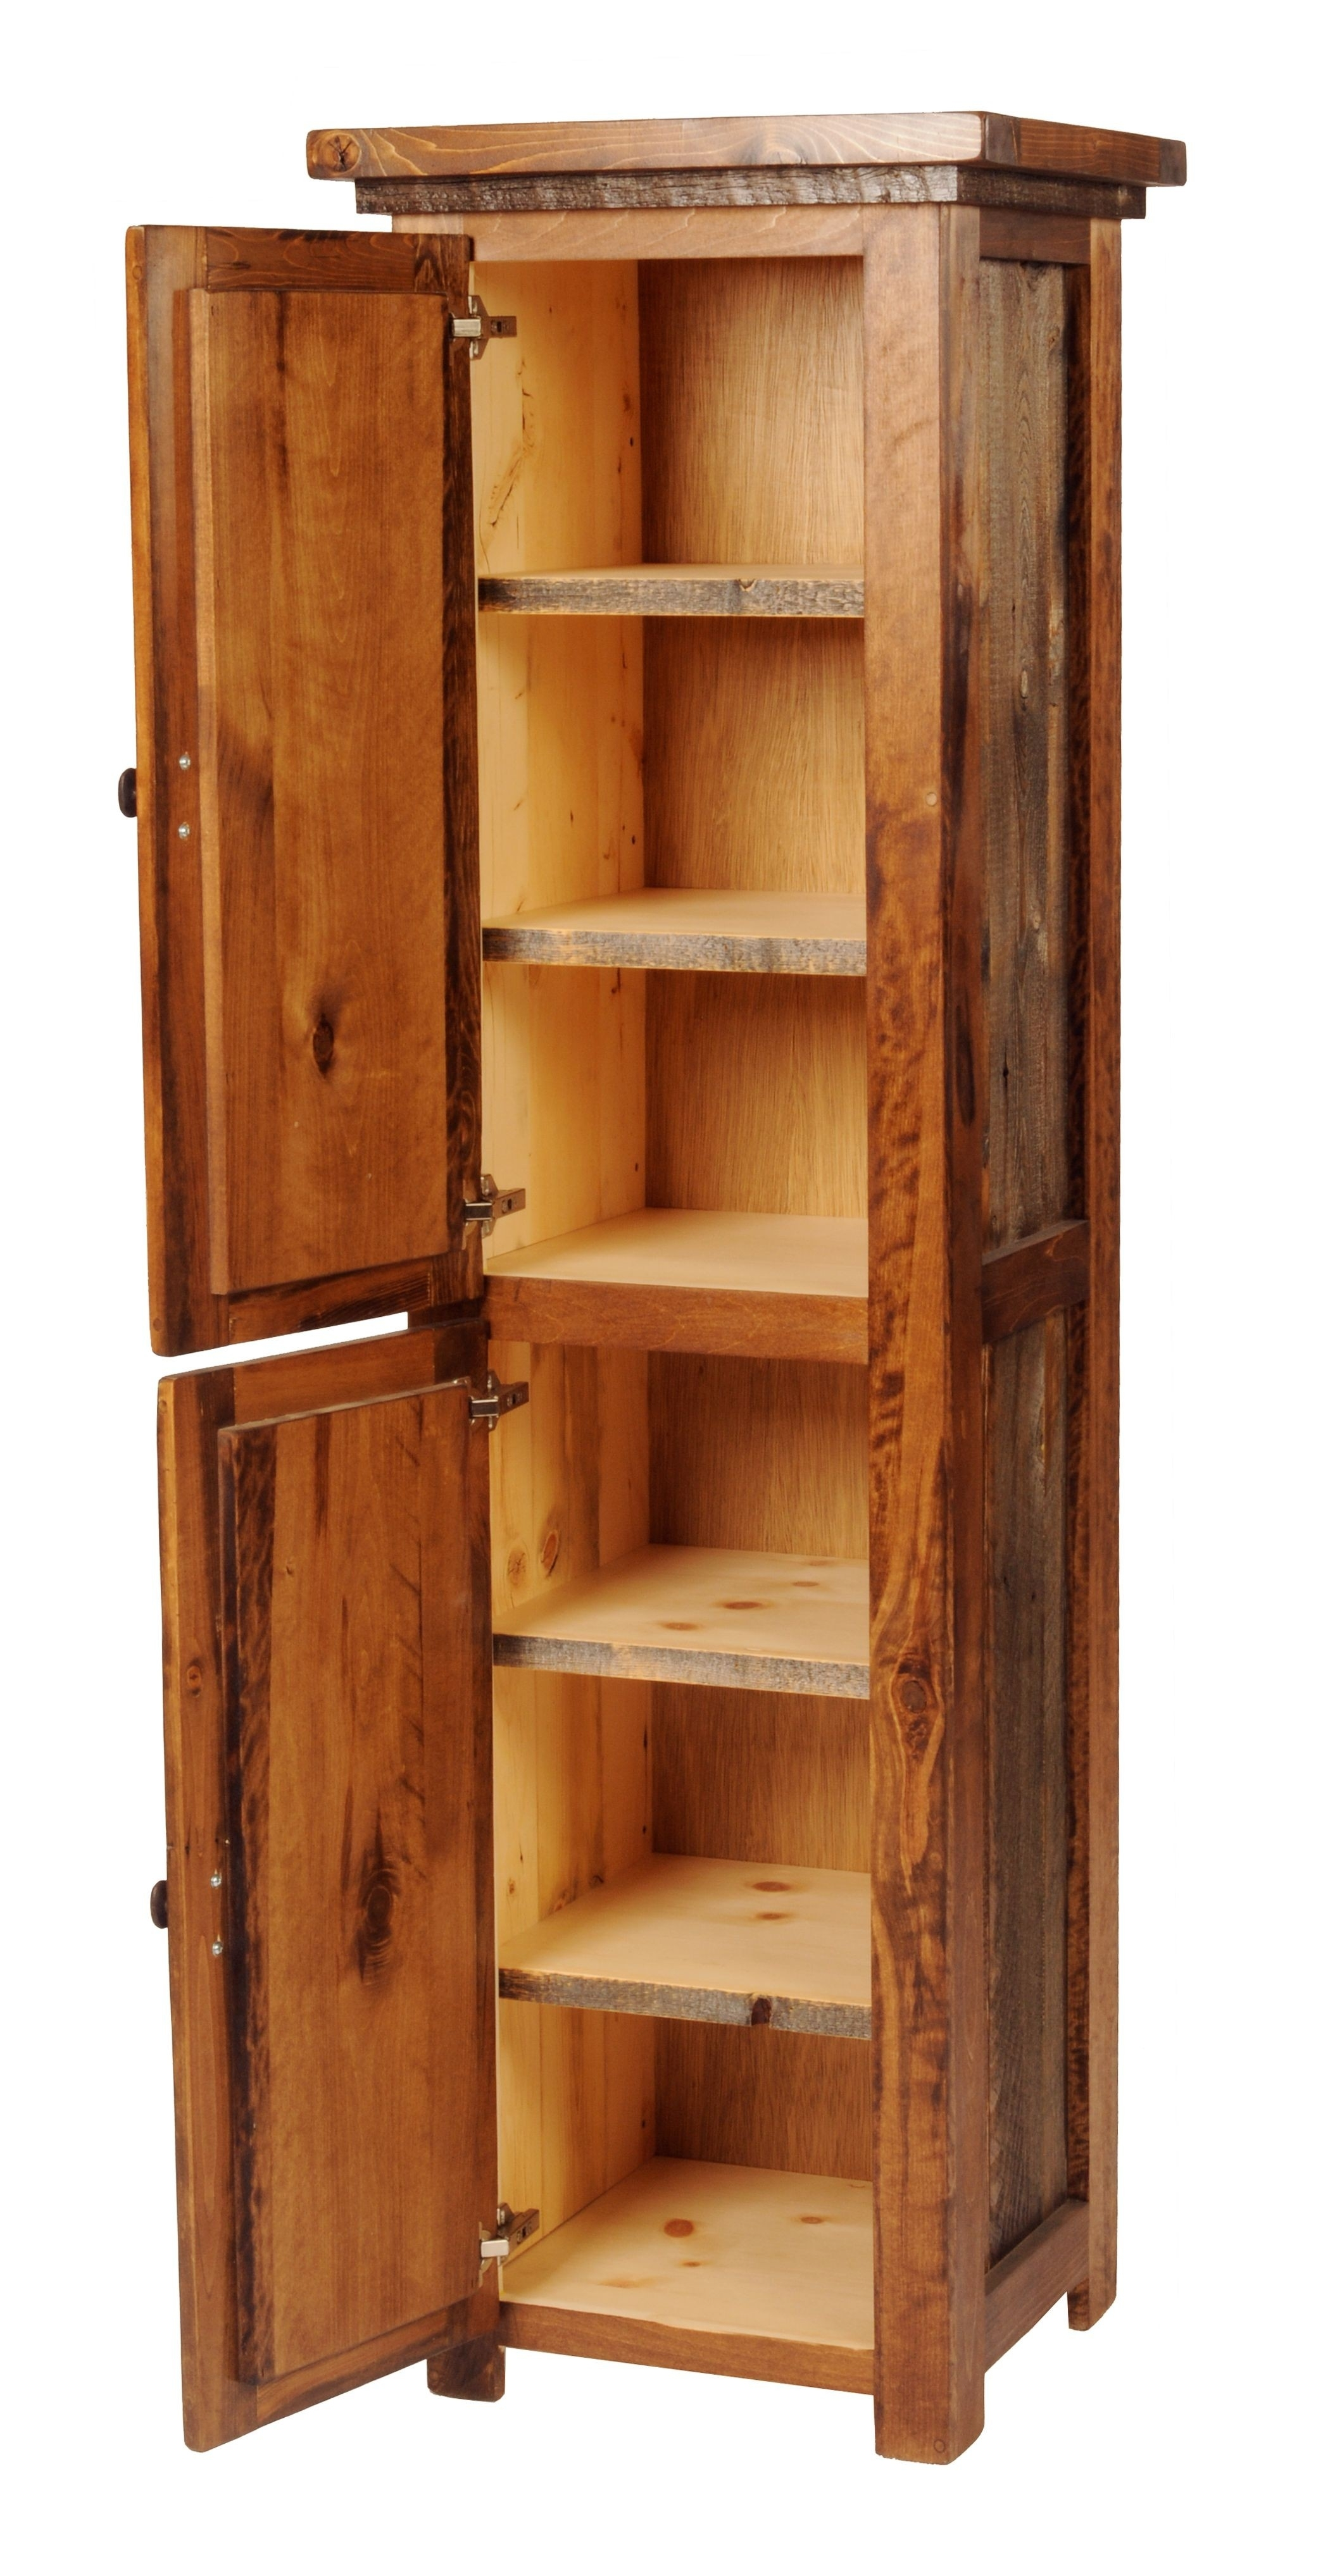 Picture of: Wood Linen Cabinet Ideas On Foter